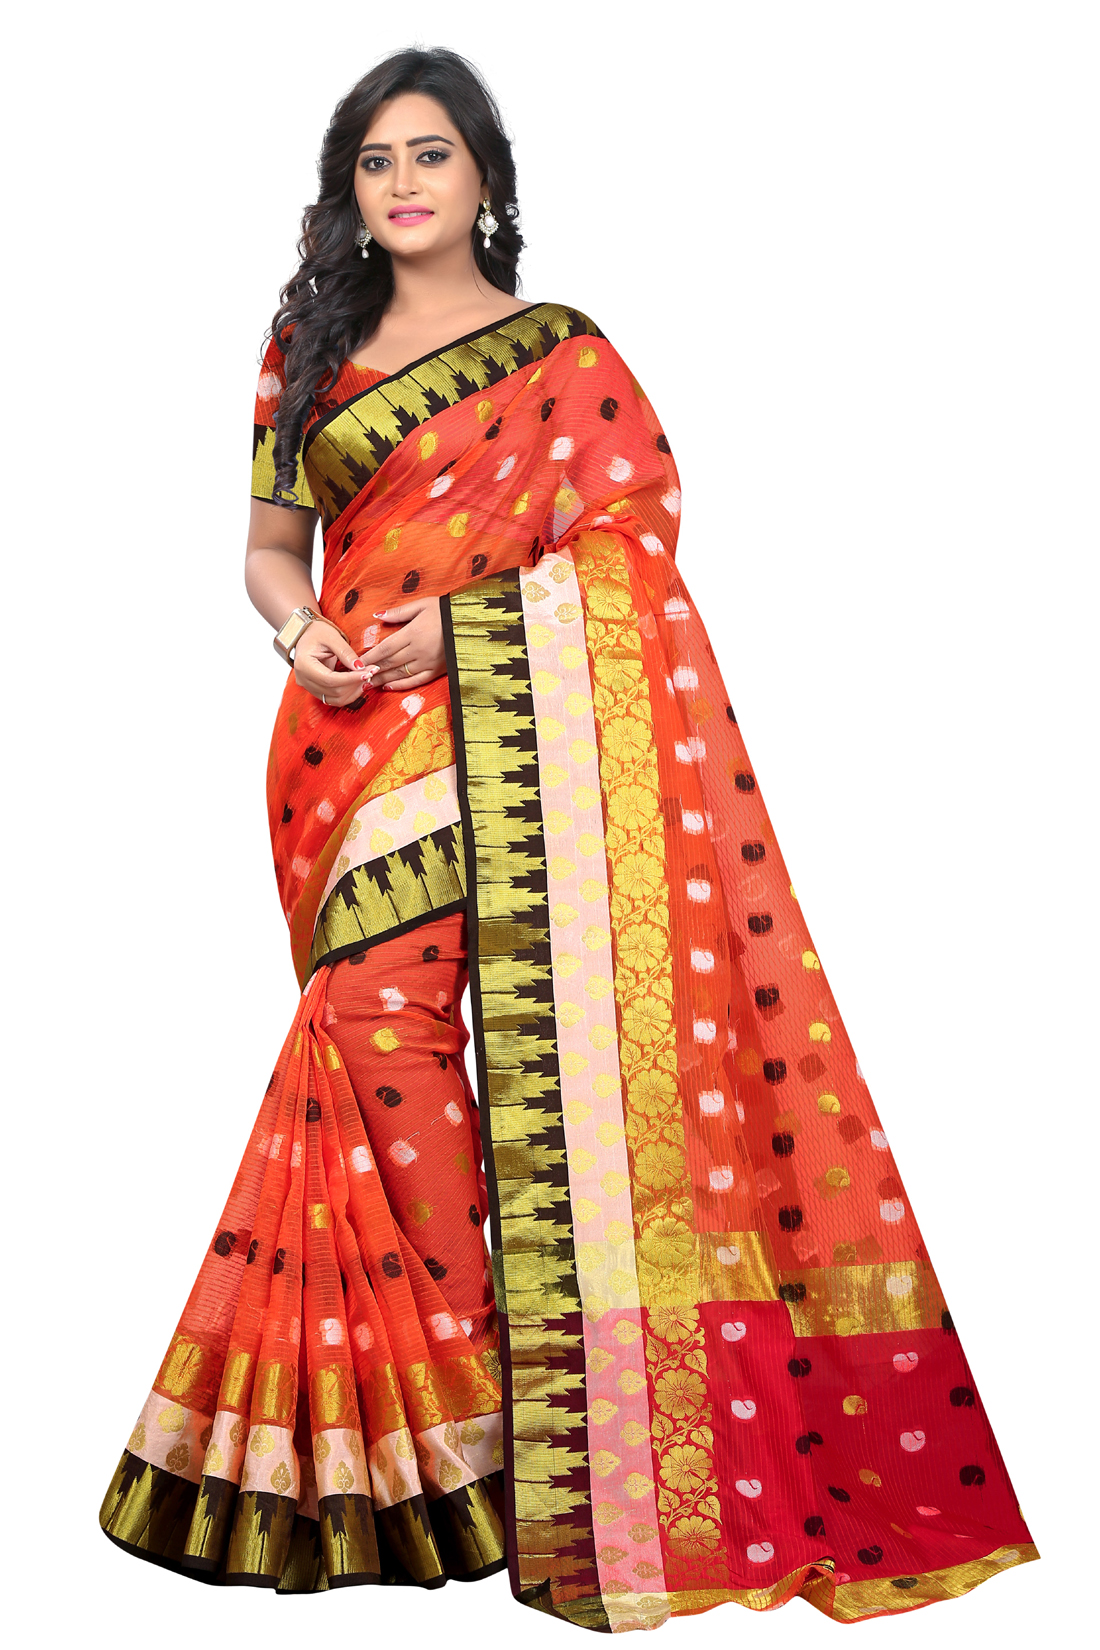 Latest OrangeJacquard Saree With Blouse